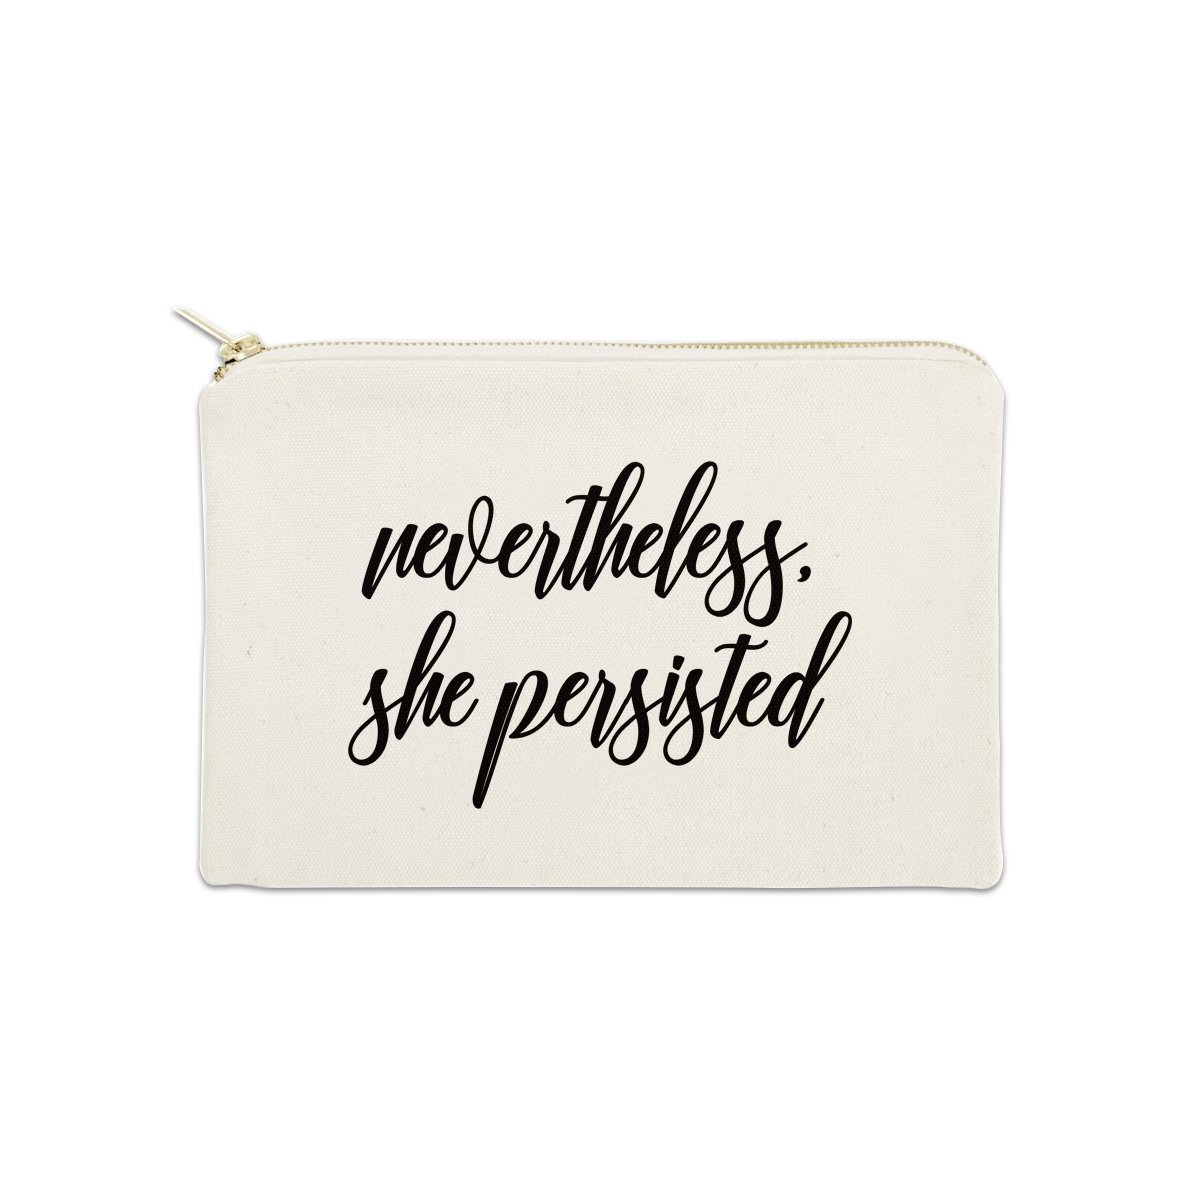 Nevertheless, She Persisted 12 oz Cosmetic Makeup Cotton Canvas Bag - (Natural Canvas)